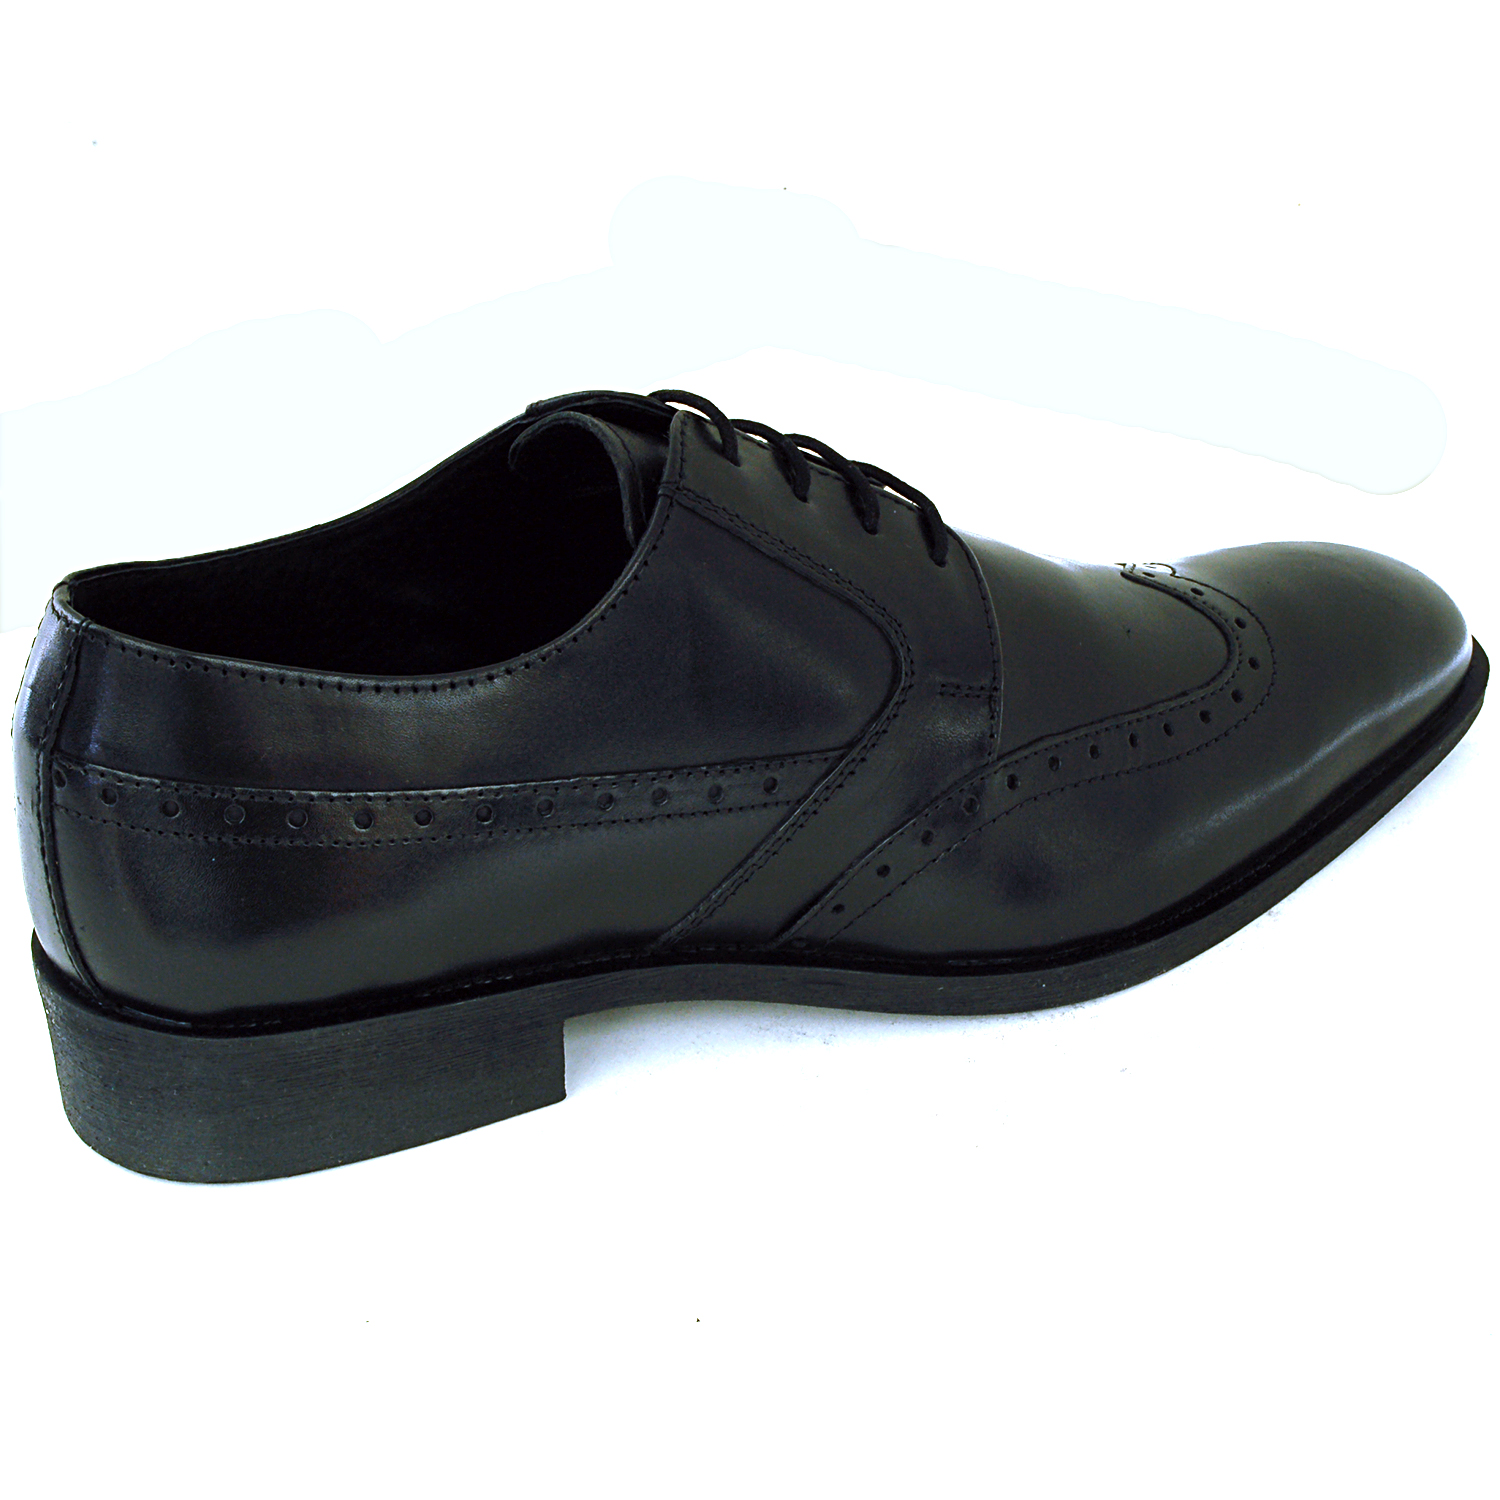 Mens Wing Tip Oxfords Lace Up Leather Comfort Brogue ...